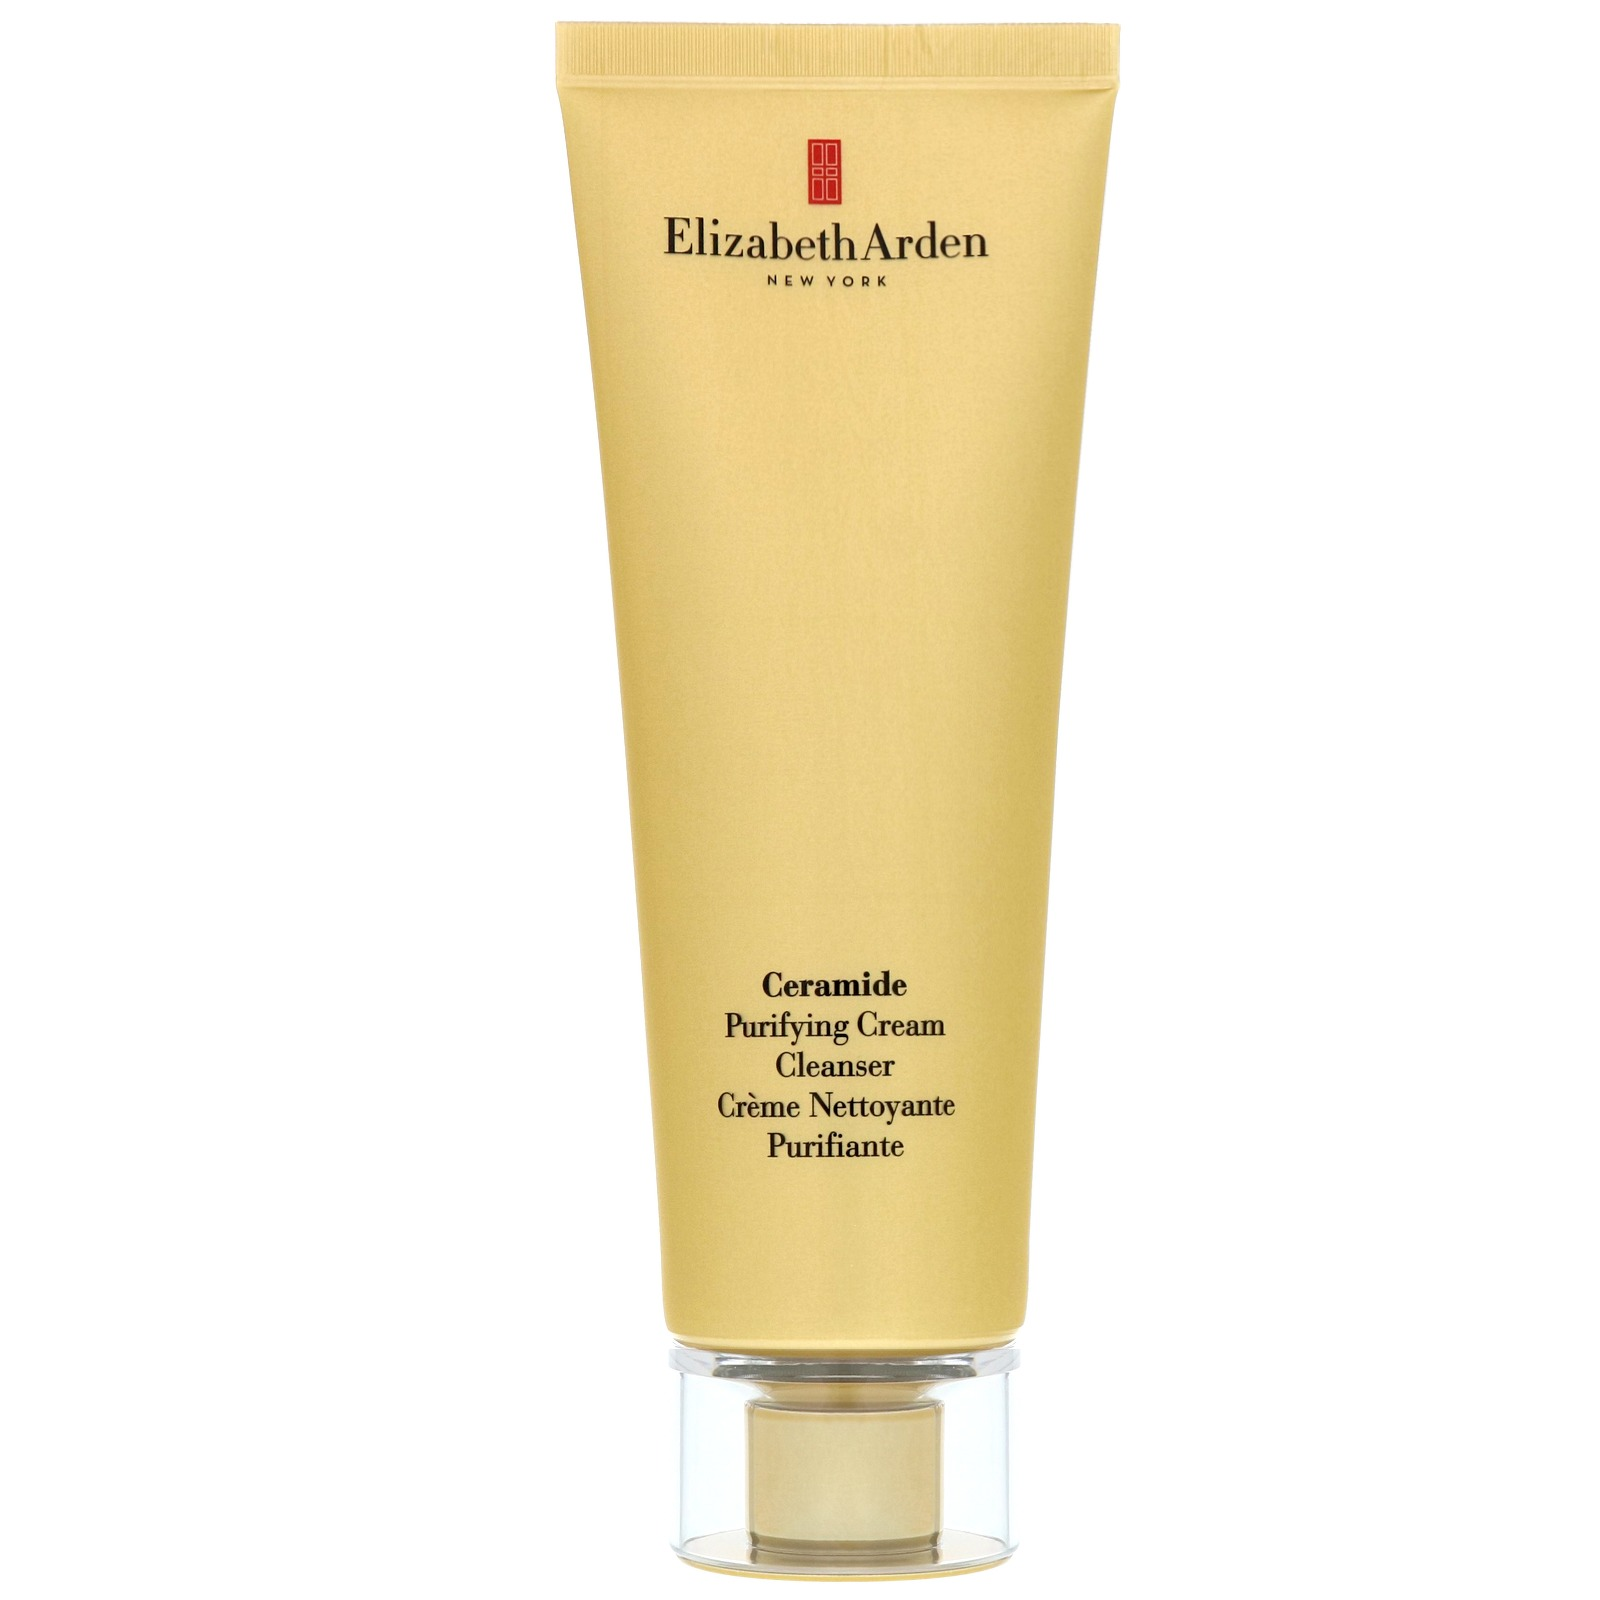 Elizabeth Arden Cleansers & Toners Ceramide Purifying Cream Cleanser 125ml / 4.2 fl.oz.